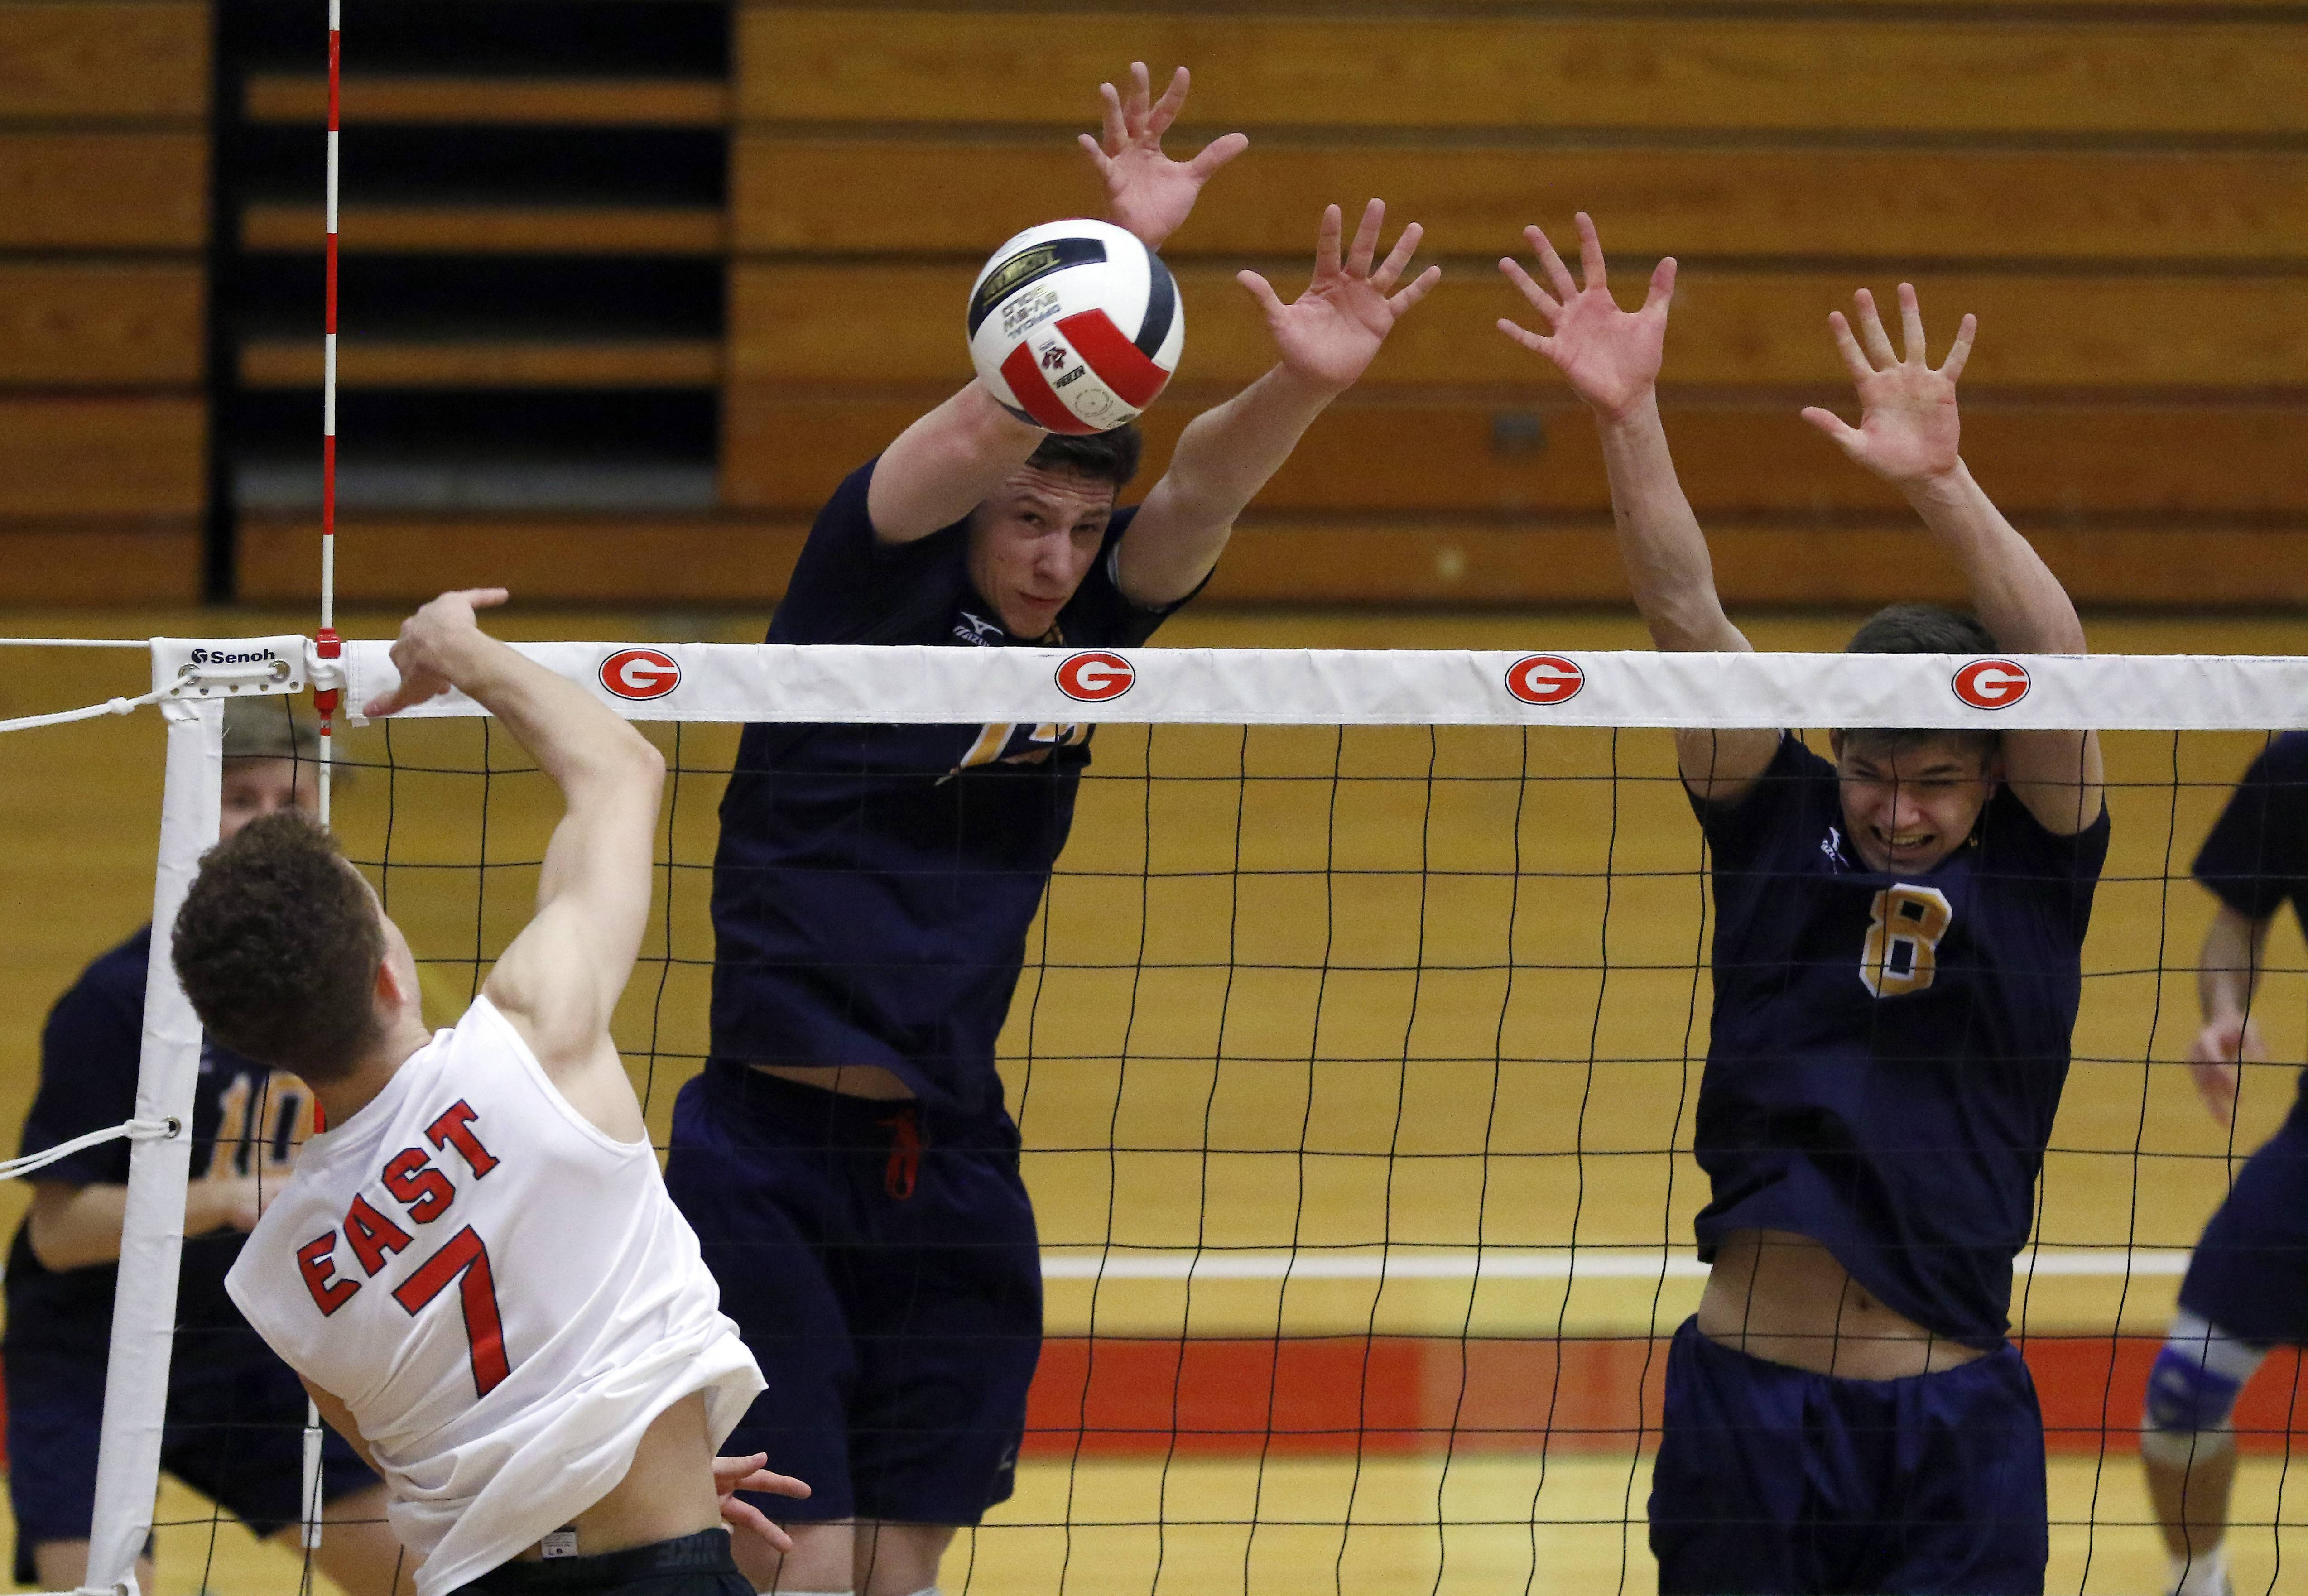 Glenbard East's Matt Smith hits a shot against Neuqua Valley's Kevin Kauling, left, and Ryan McGladdery during the Springfest boys volleyball tournament Saturday at Glenbard East High School in Lombard.